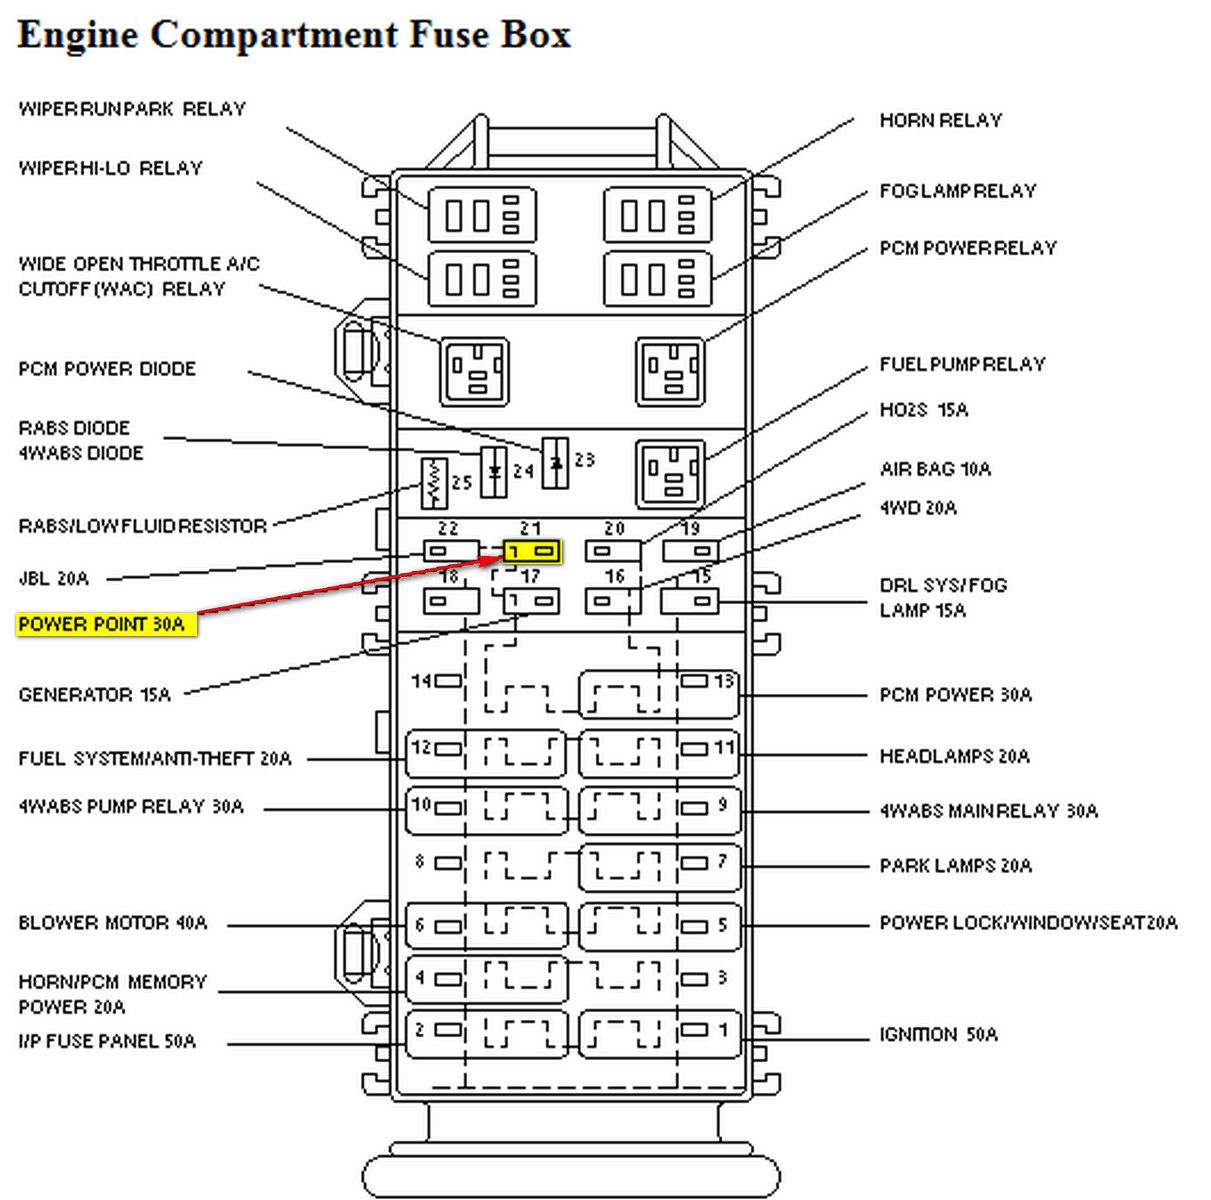 2000 ford ranger fuse diagram wiring diagram centre 2000 ford ranger 3 0 fuse box diagram 2000 [ 1211 x 1200 Pixel ]